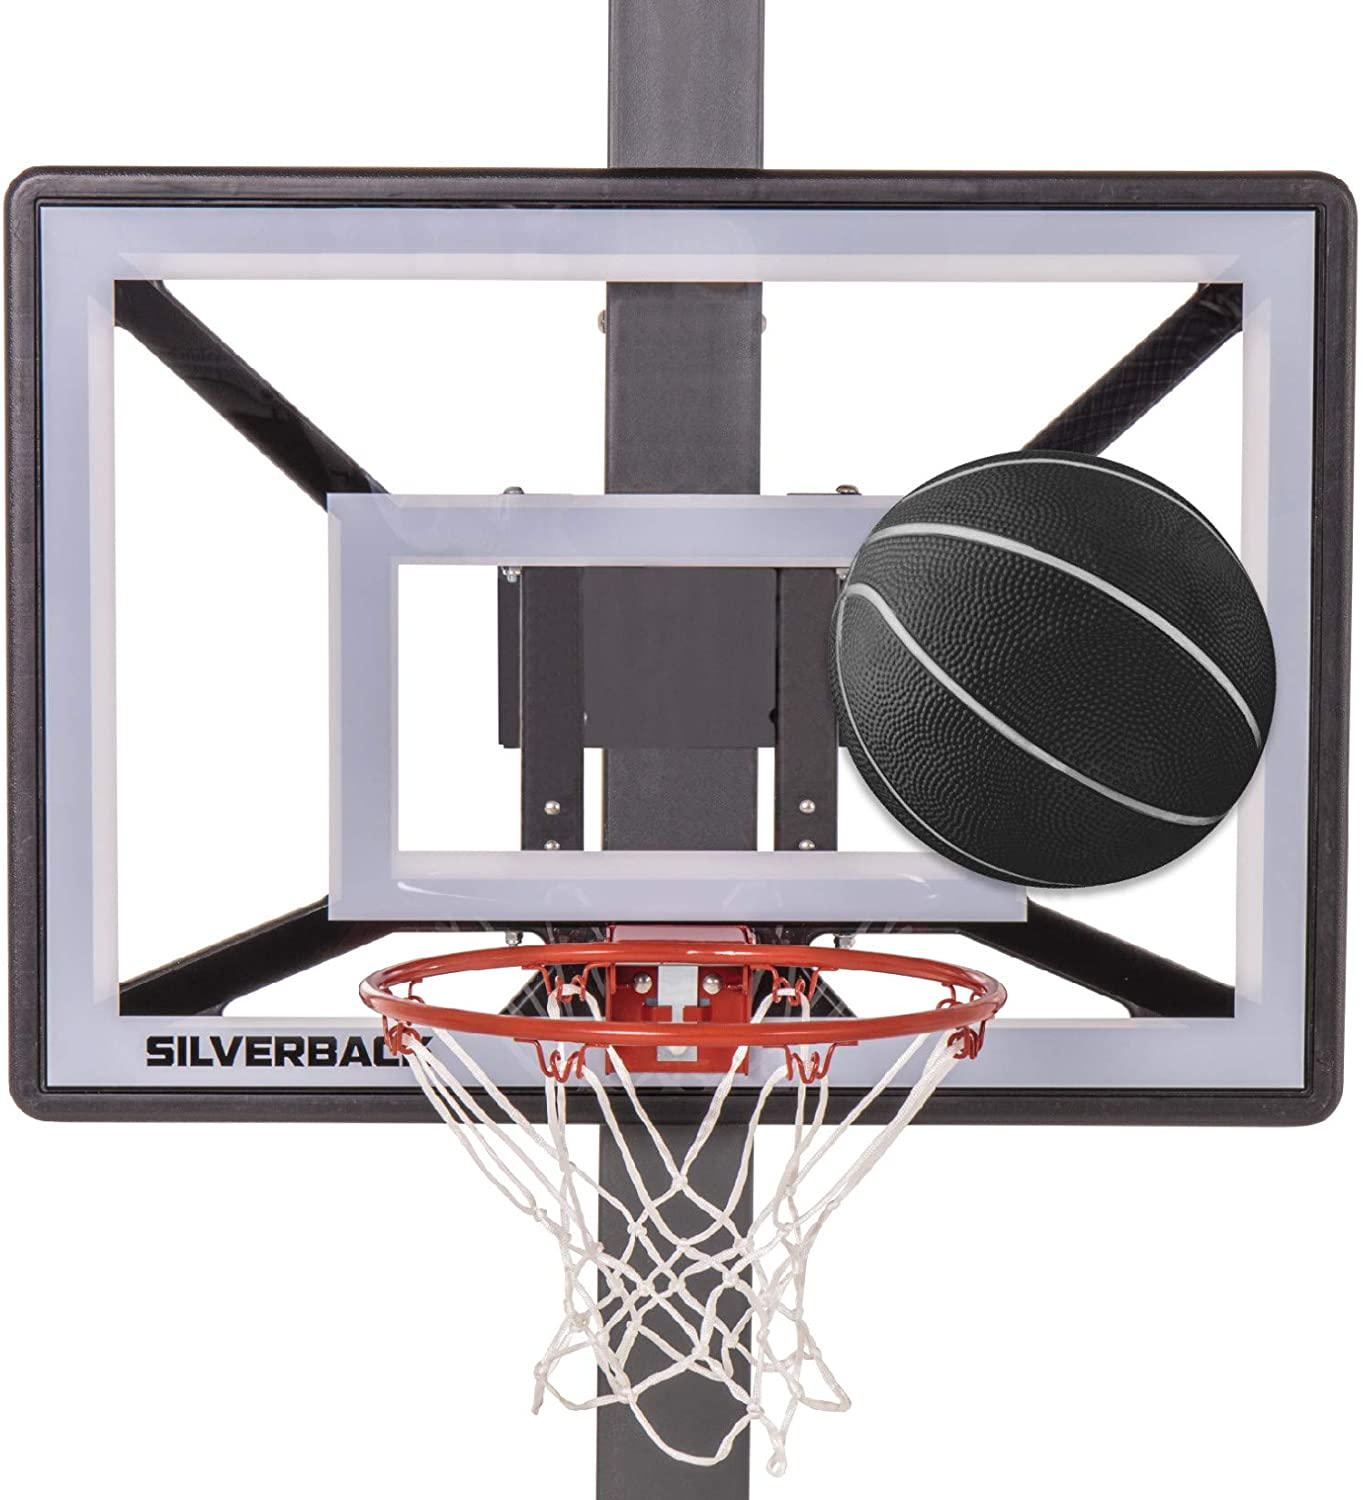 "Silverback Junior Youth 33"" Basketball Hoop with Lock 'n Rock Mounting Technology Mounts to Round and Vertical Poles, Black (B8410W) : Sports & Outdoors"